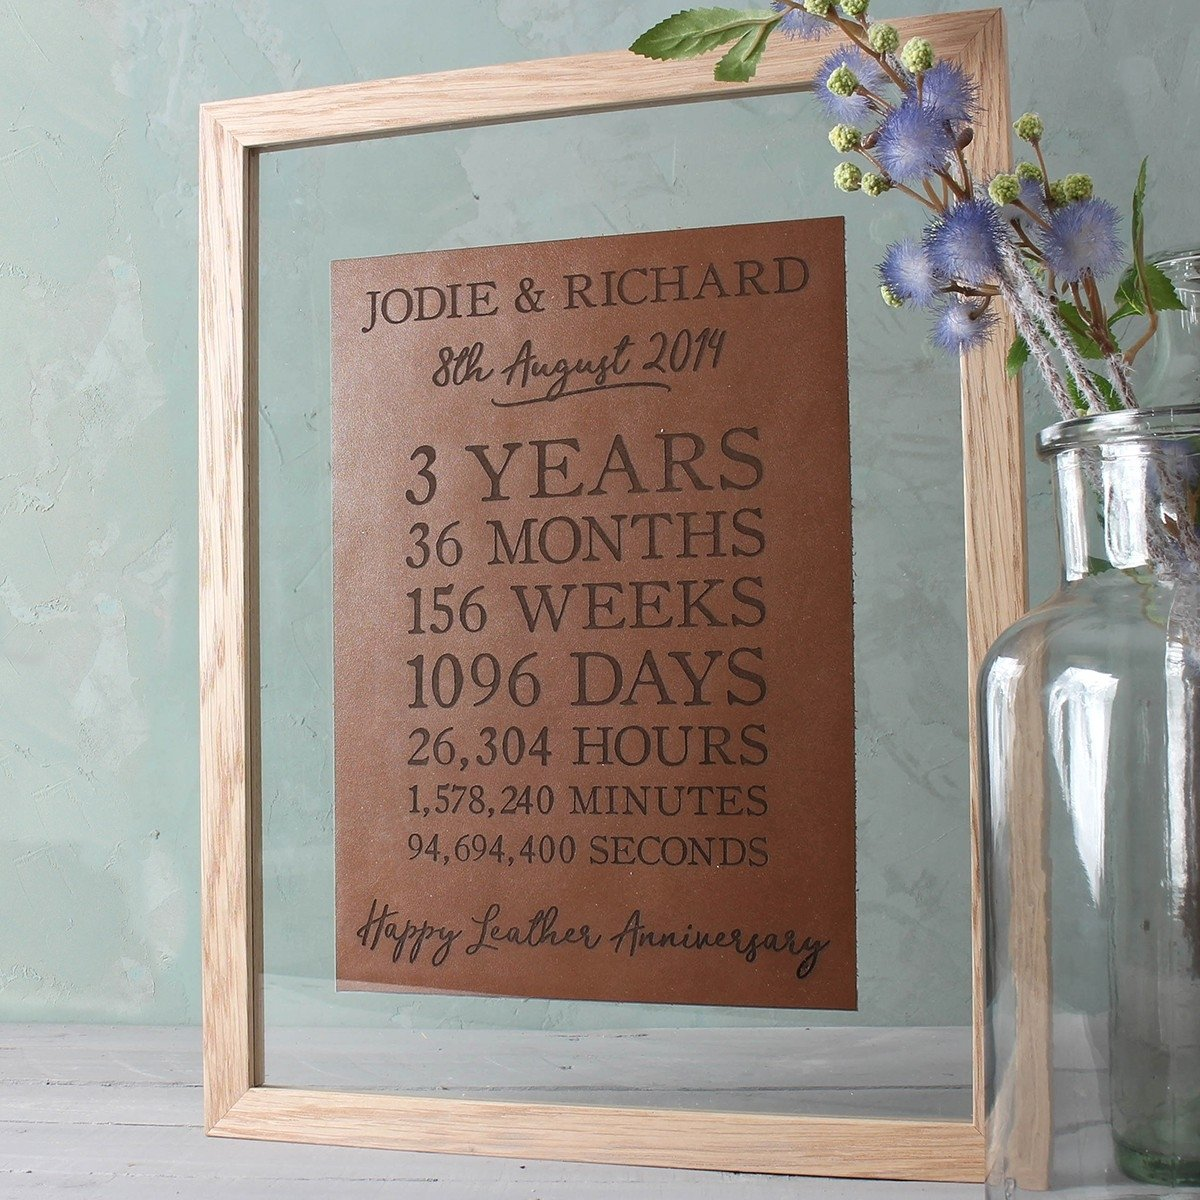 10 Gorgeous Third Anniversary Gift Ideas For Men wedding anniversary gifts for him 3 years inspirational leather 3rd